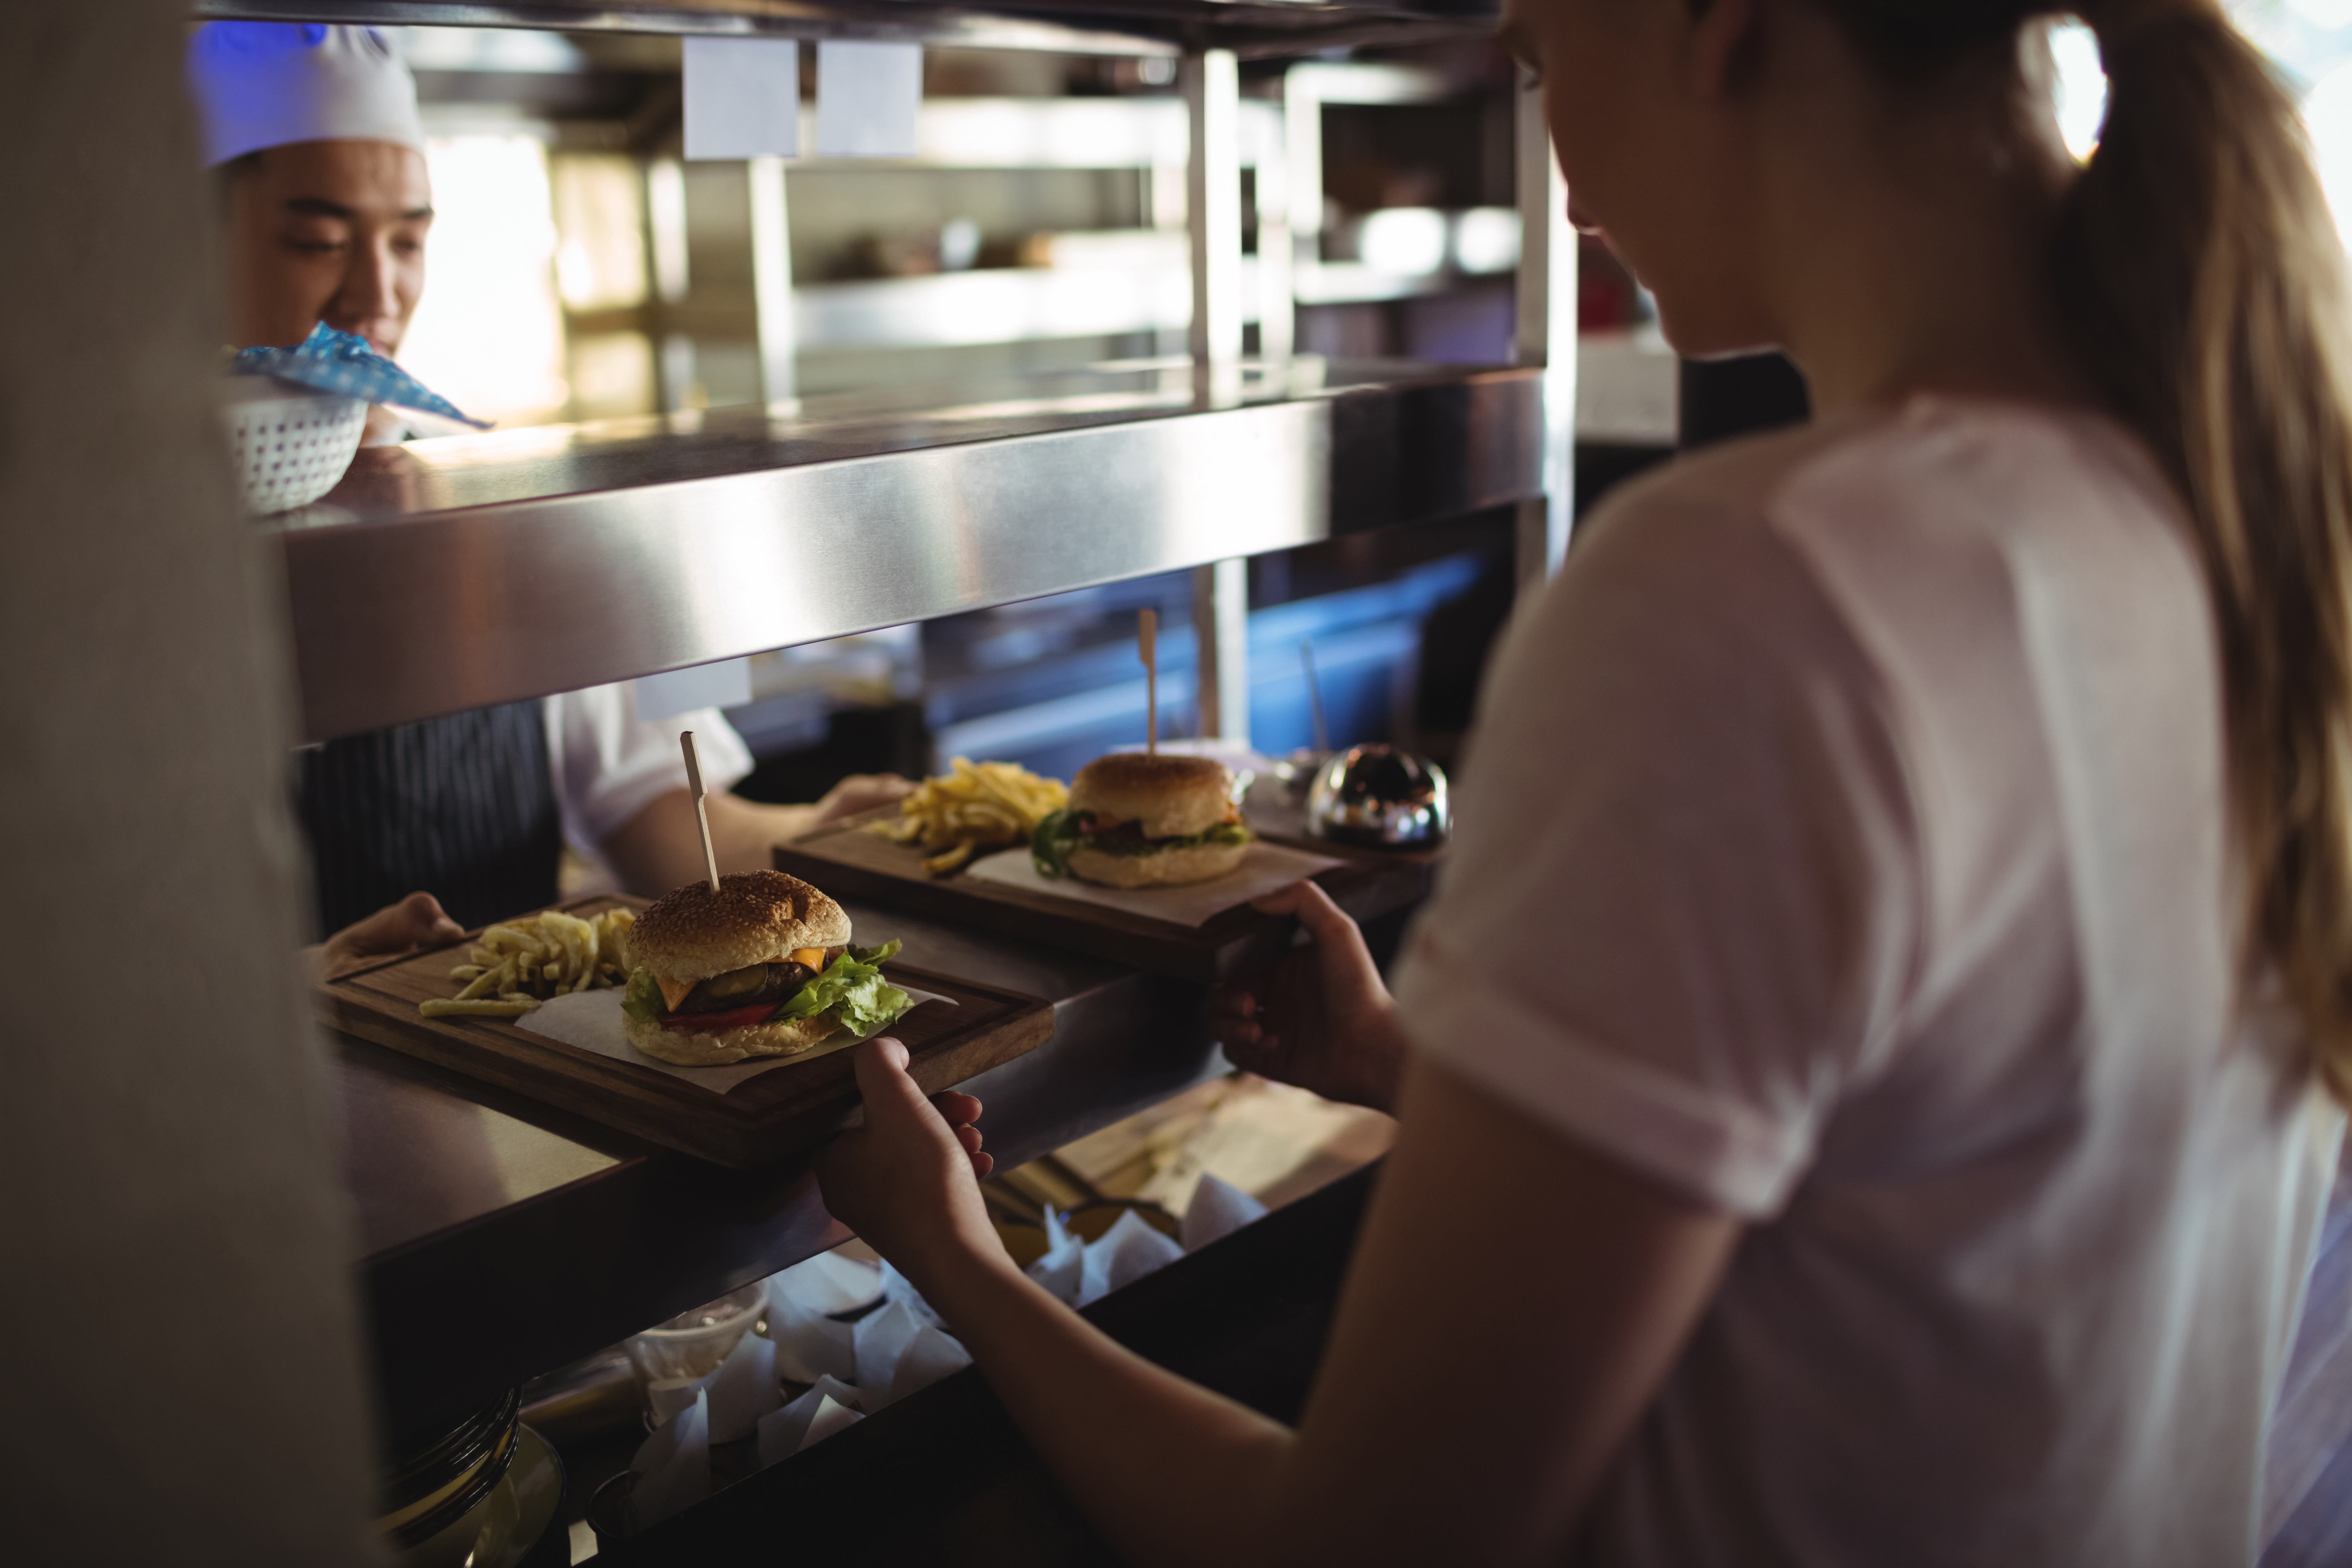 A server picks up two burgers from a pass in a restaurant.